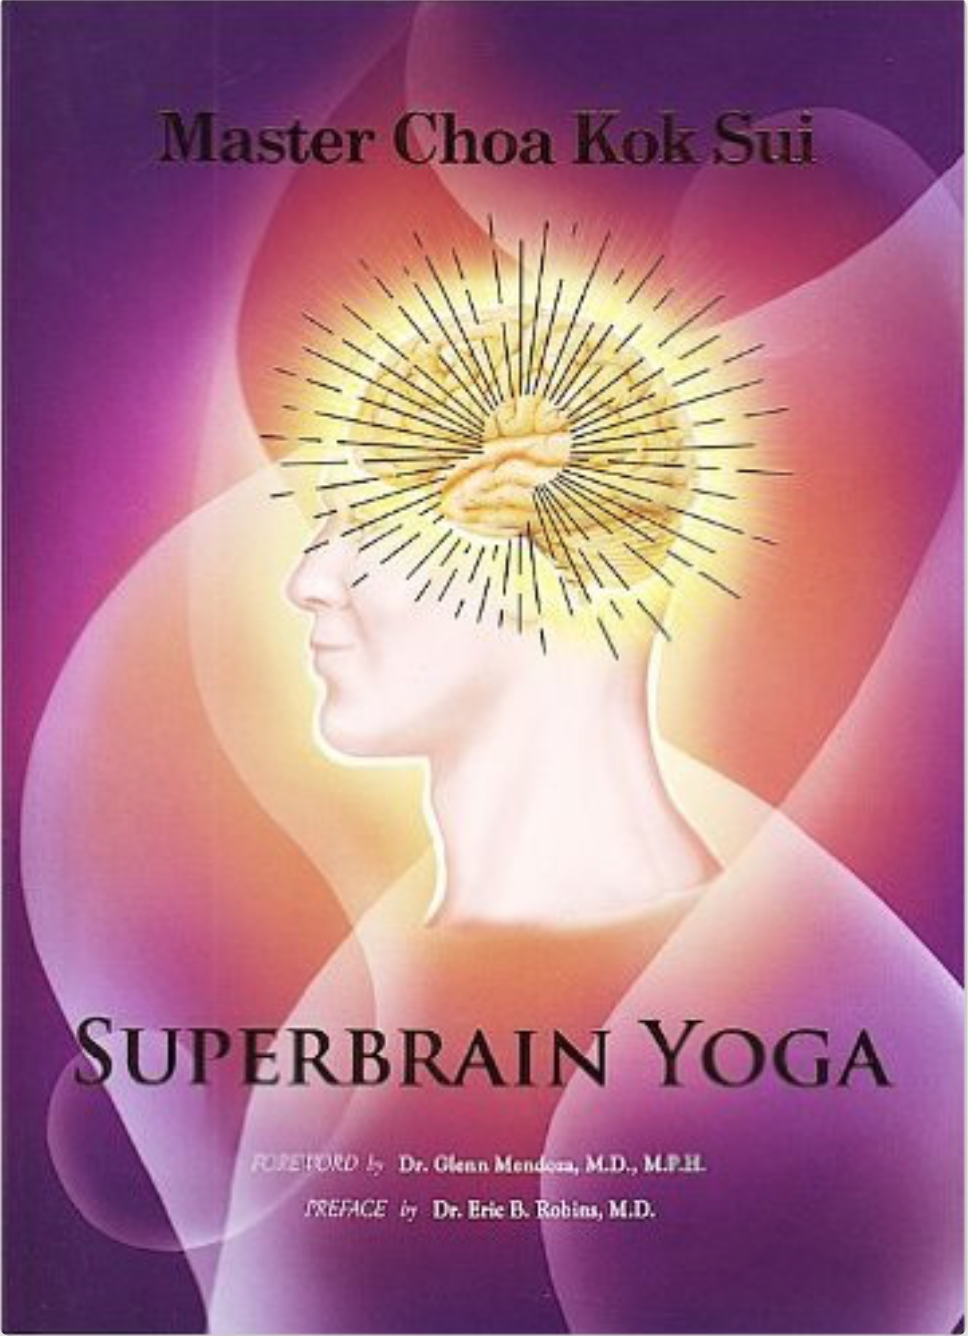 Superbrain Yoga workshop